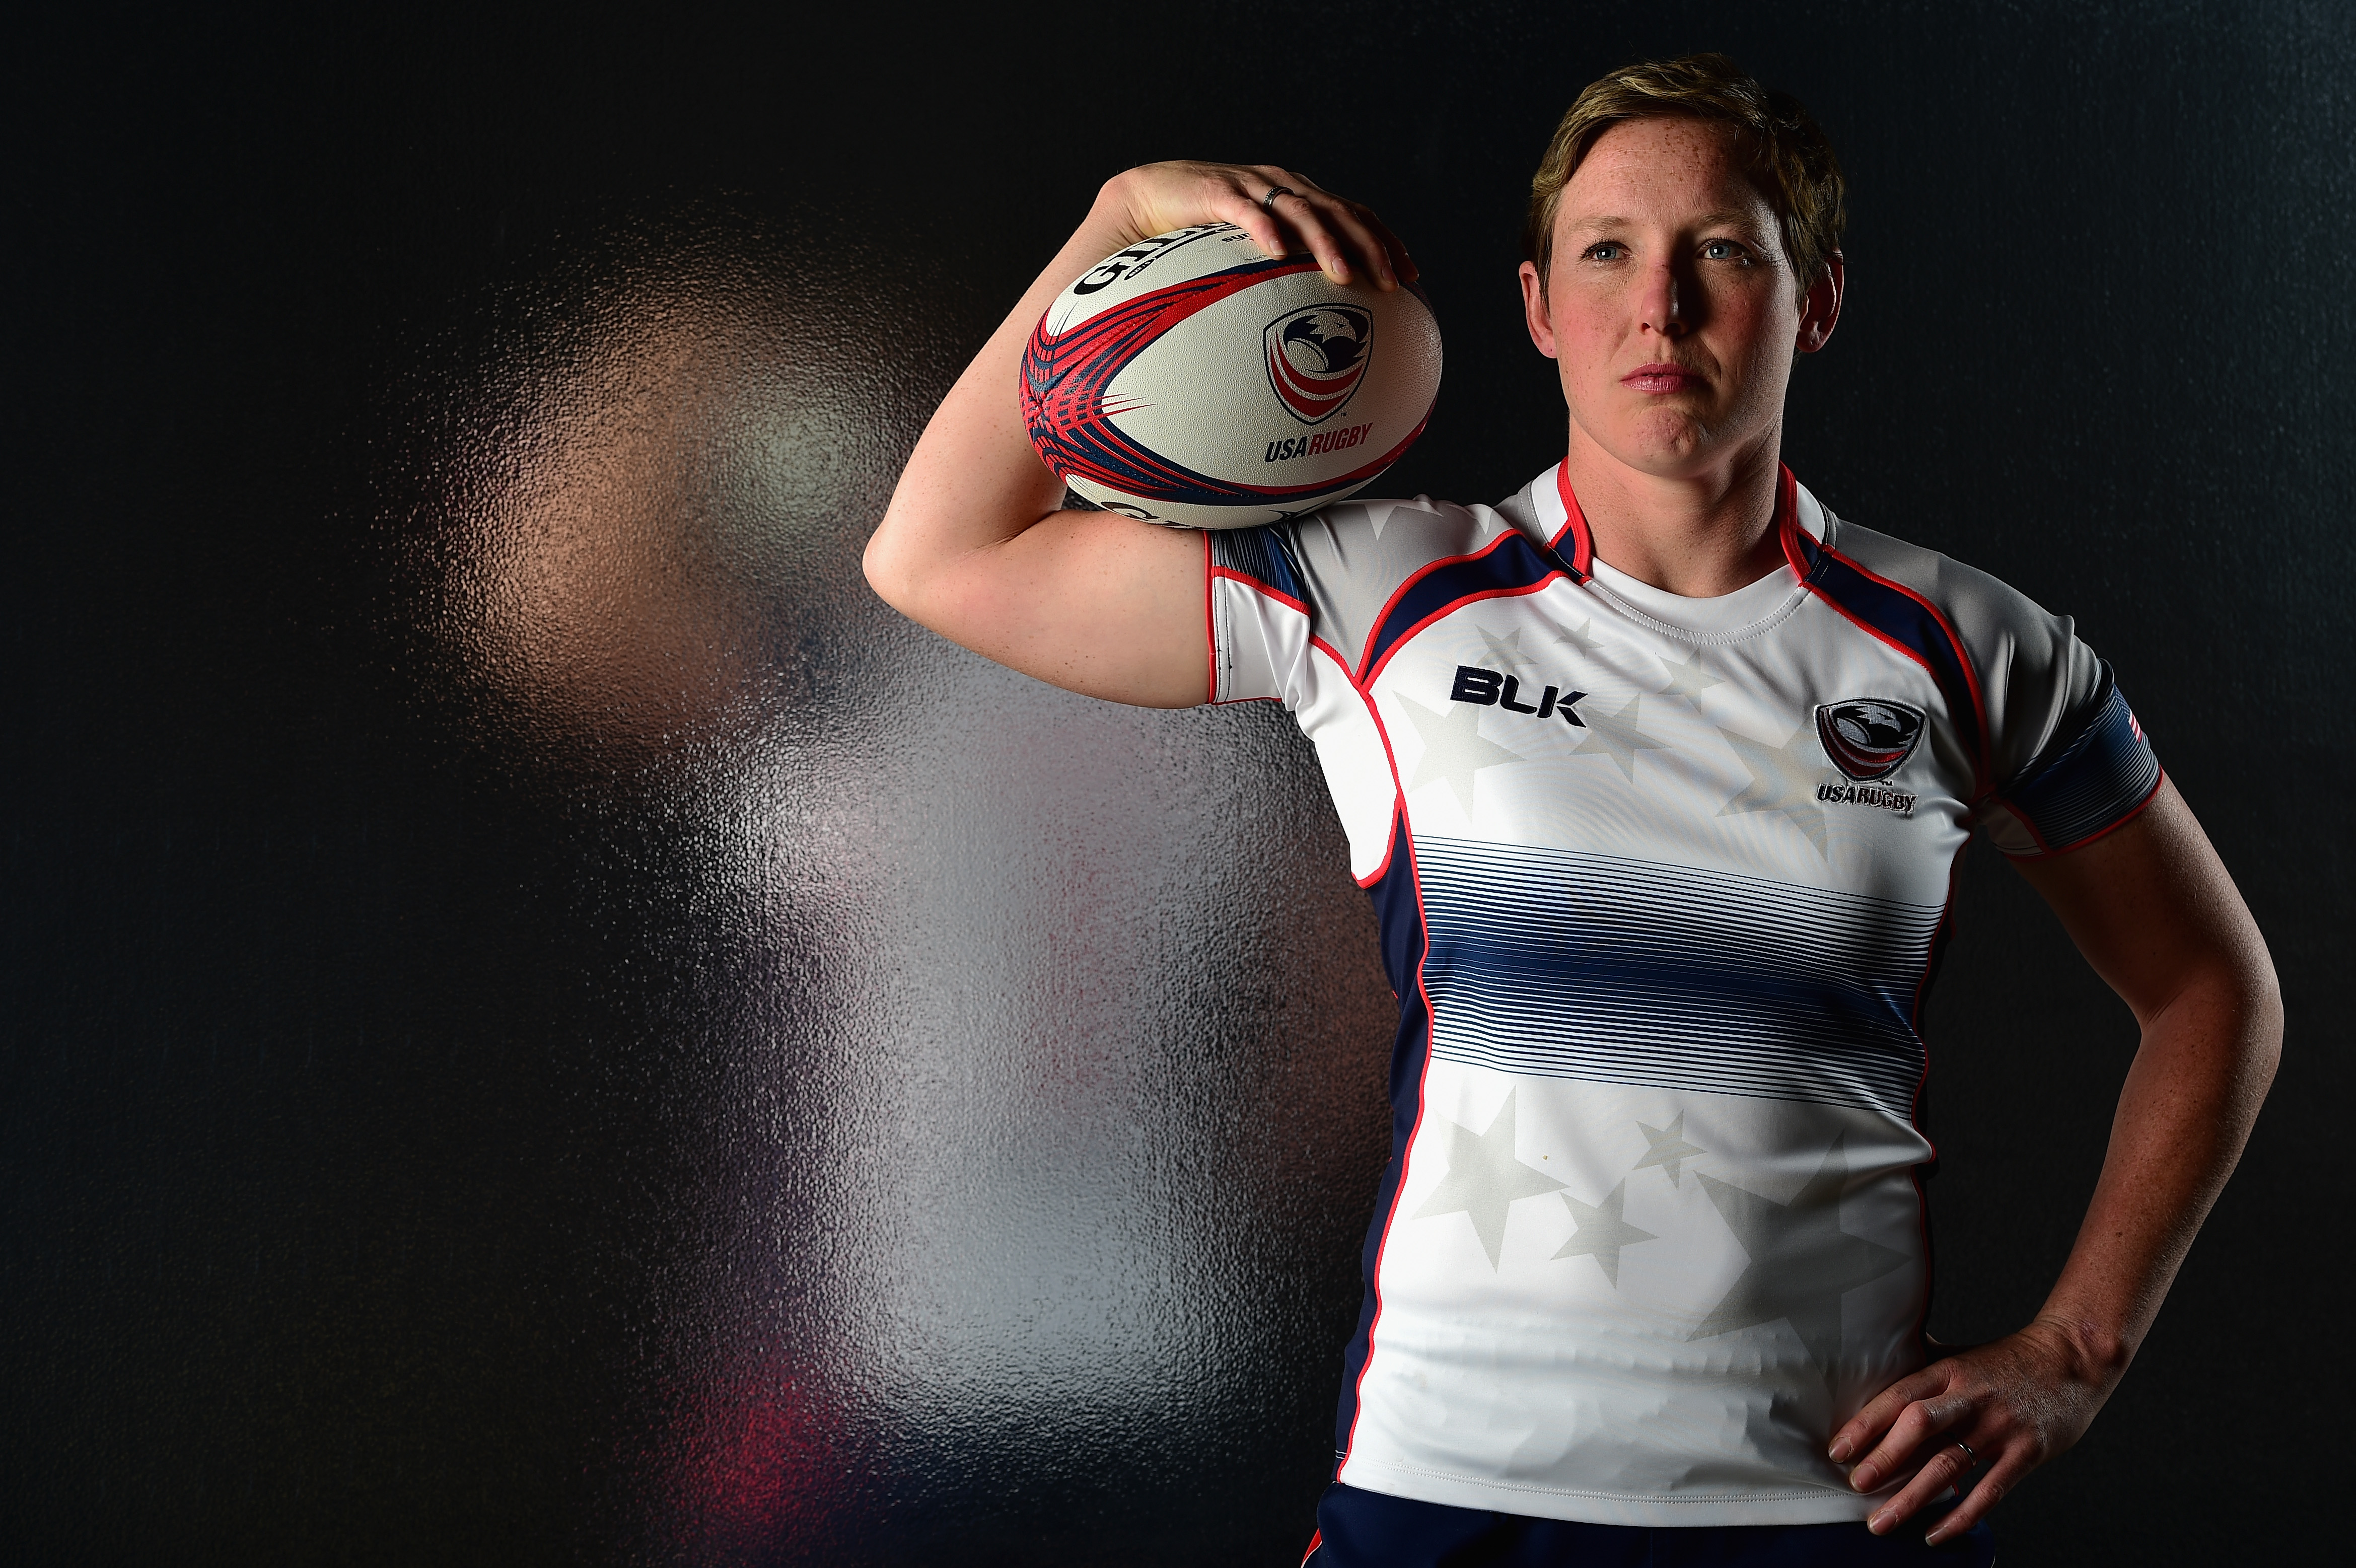 Rugby player Jillion Potter poses for a portrait at the USOC Rio Olympics Shoot at Quixote Studios on November 17, 2015 in Los Angeles, California.